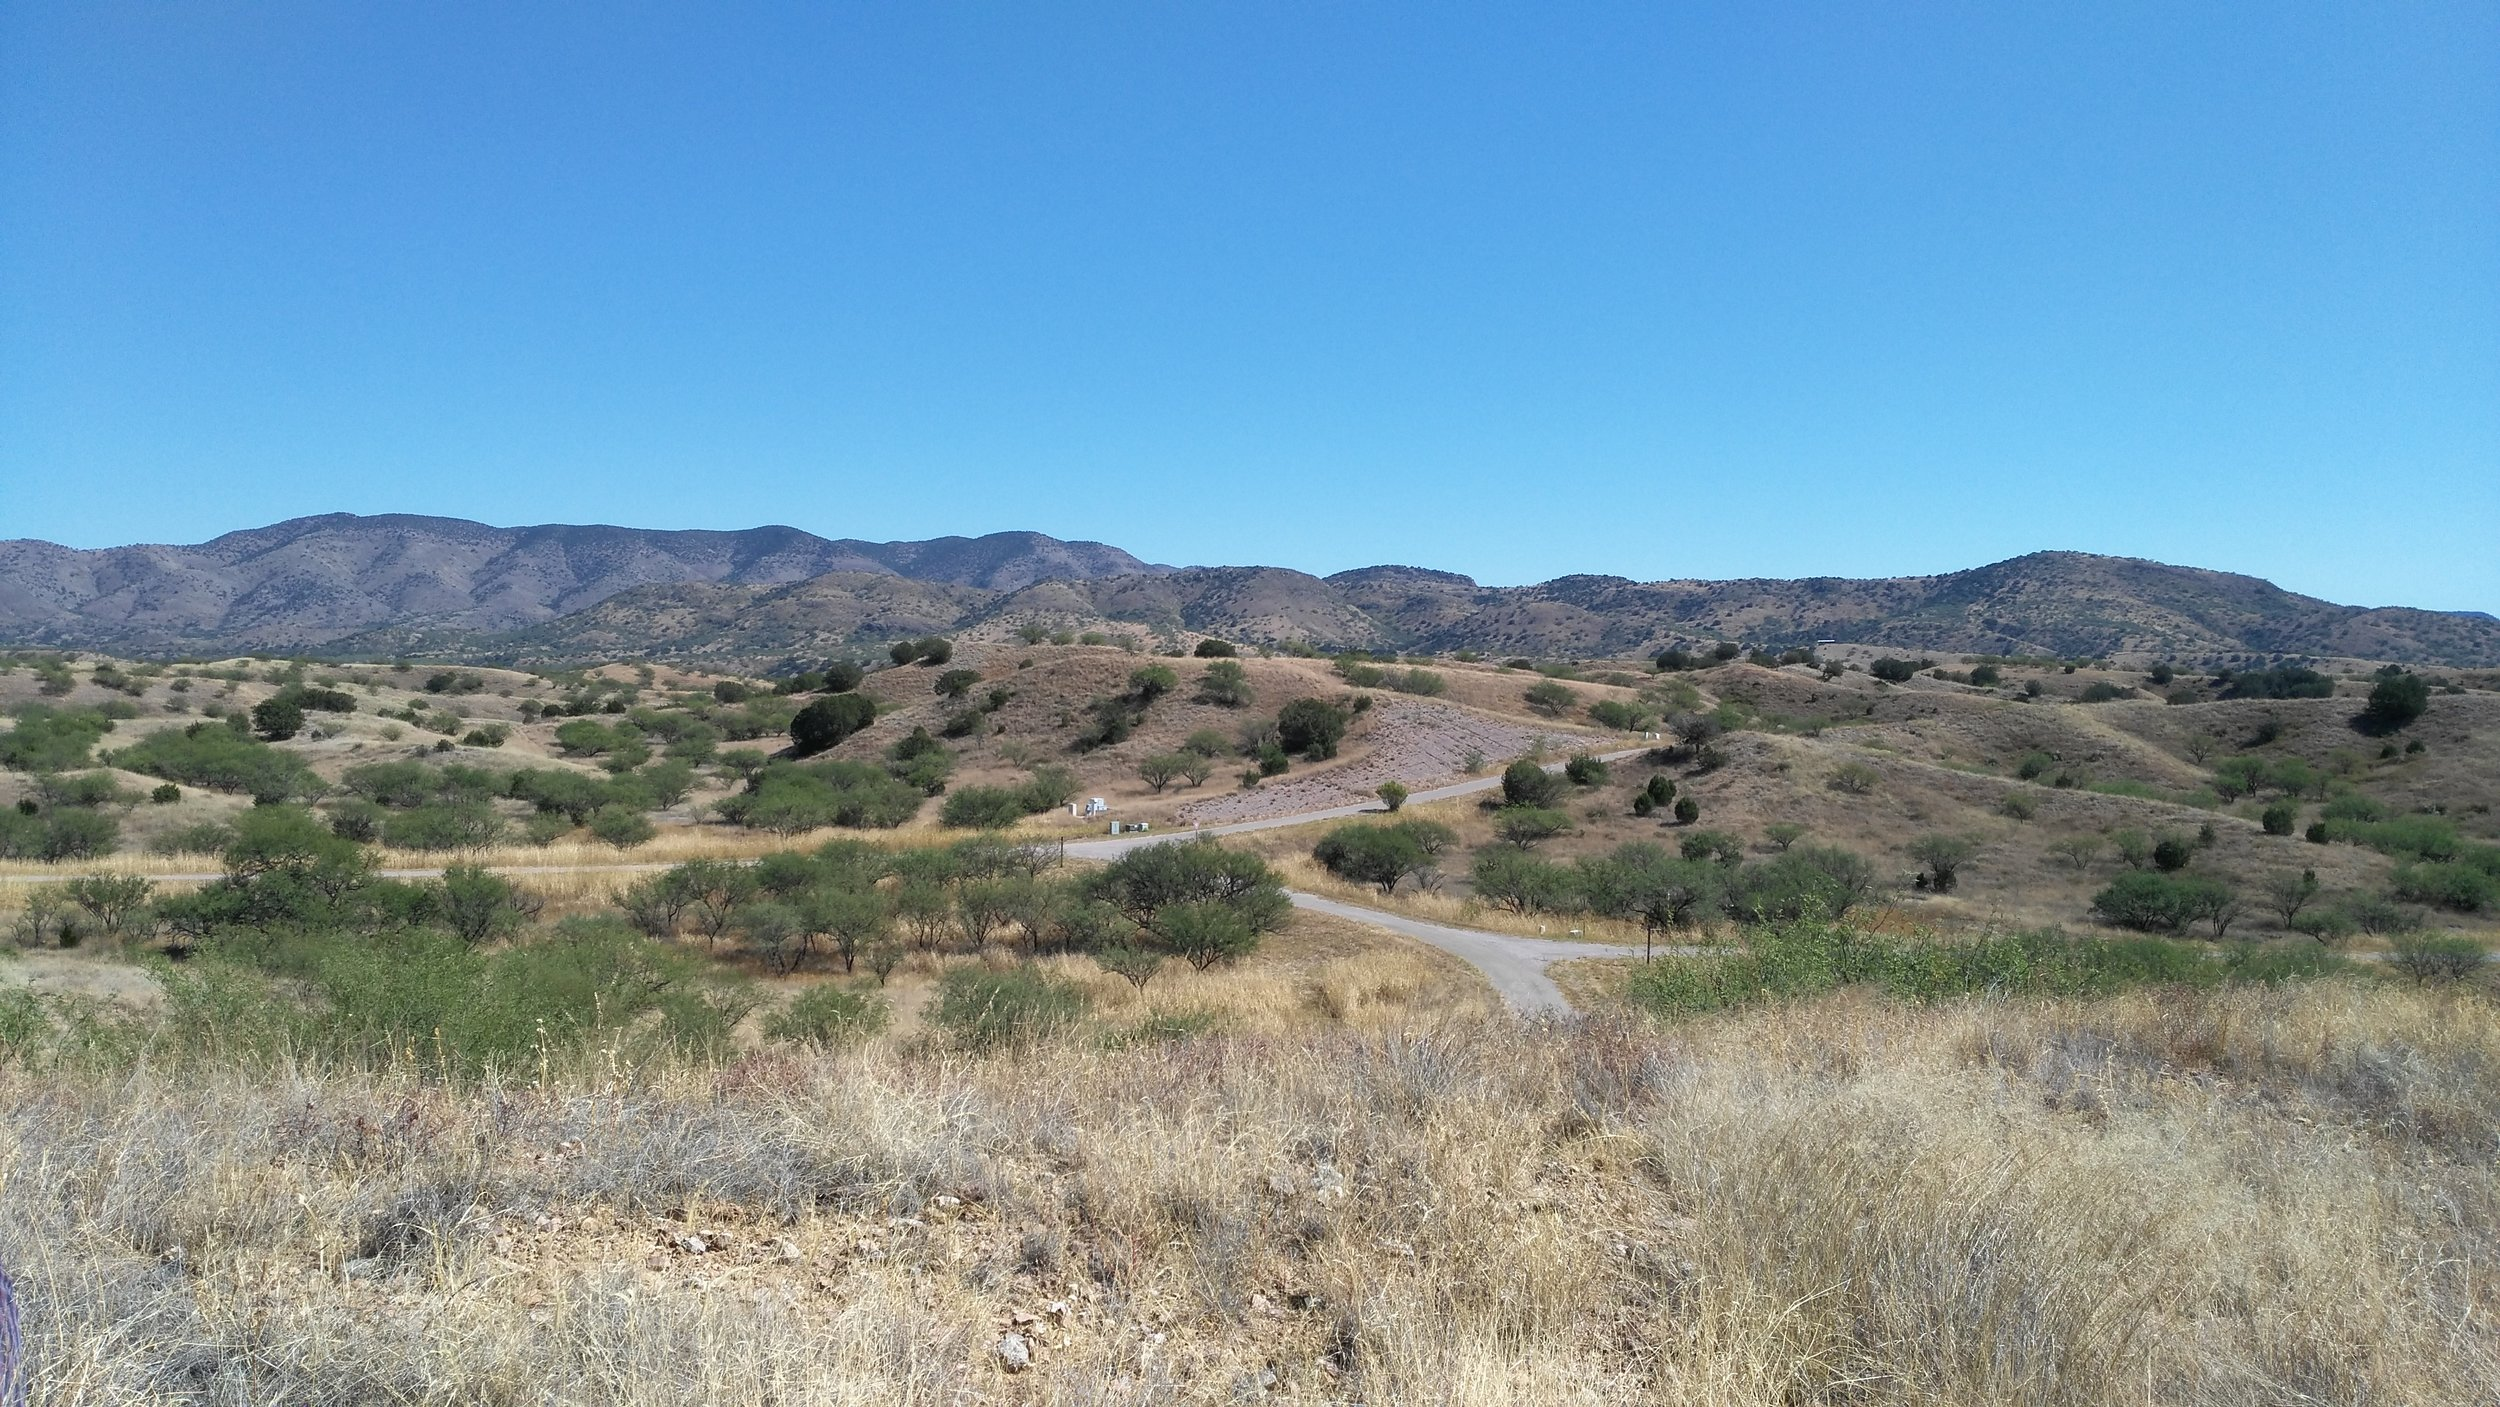 The site of a failed housing development in the semiarid desert of Patagonia. Roads and infrastructure were begun here. The property has been purchased by the Border Lands Restoration Institute who are conceiving of ways to fund the restoration project while potential working with housing developers and agriculture.